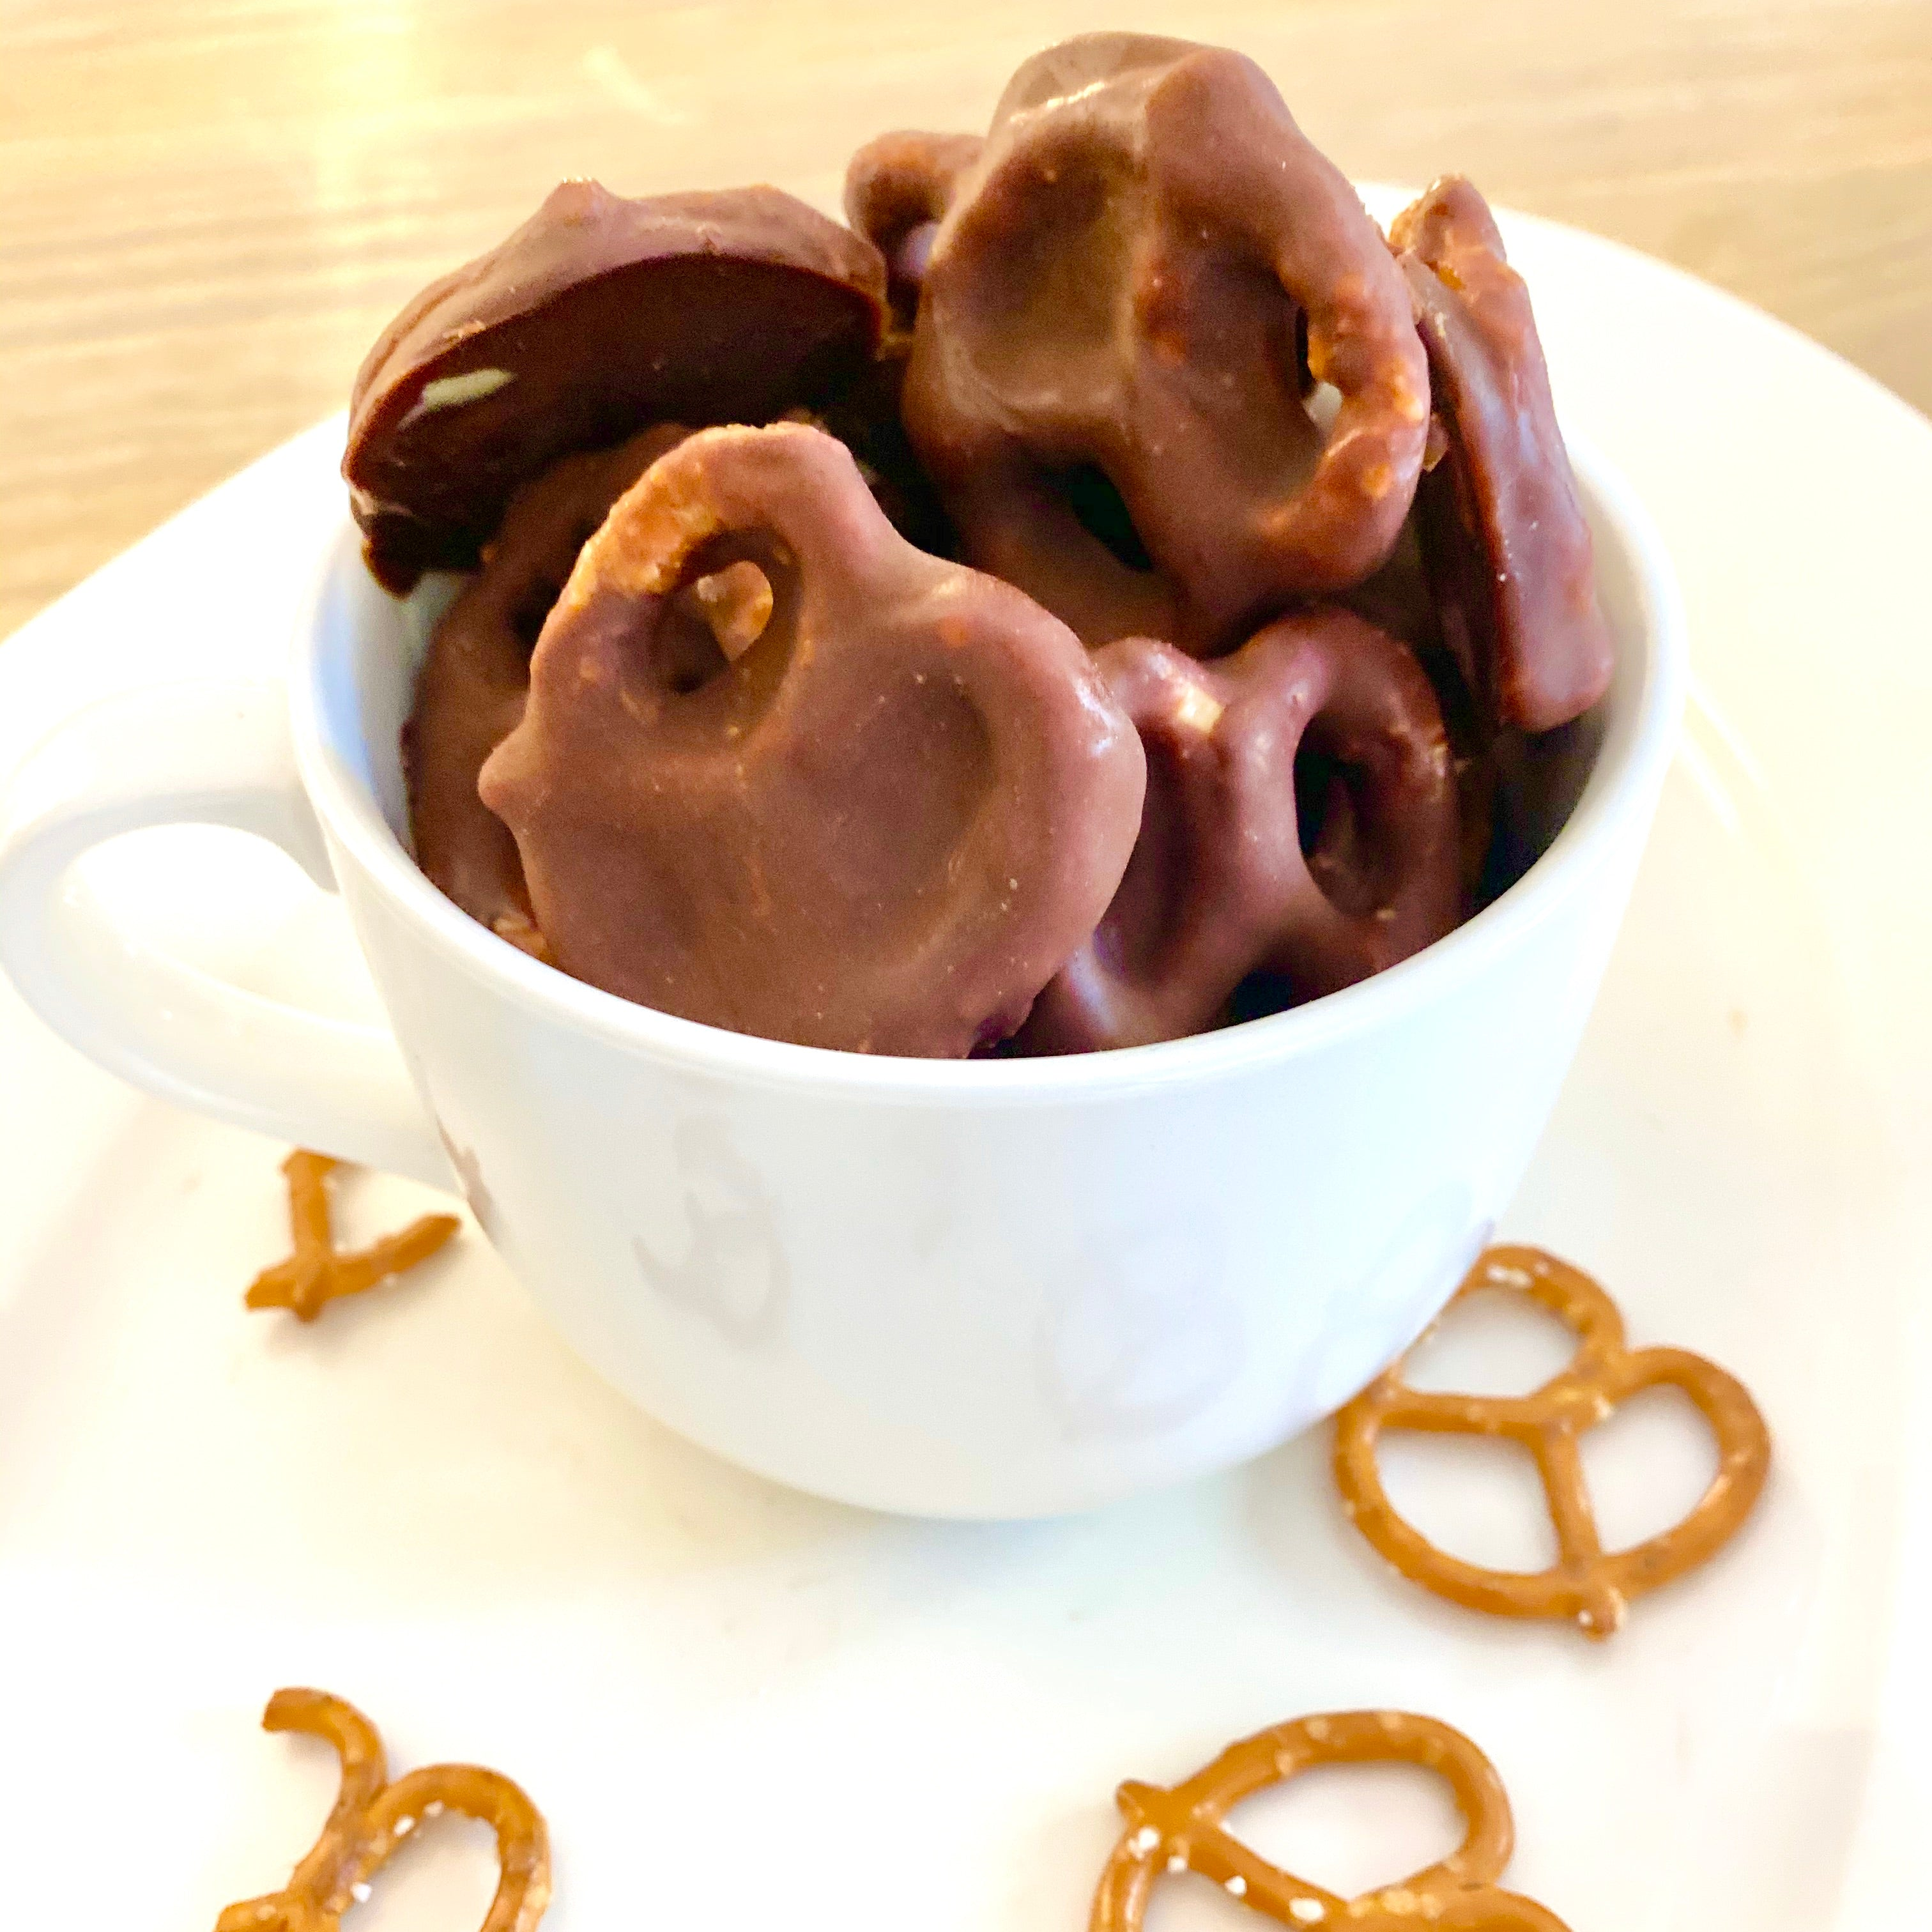 Pretzels covered in Natural Peanut Butter and chocolate, in a mug.